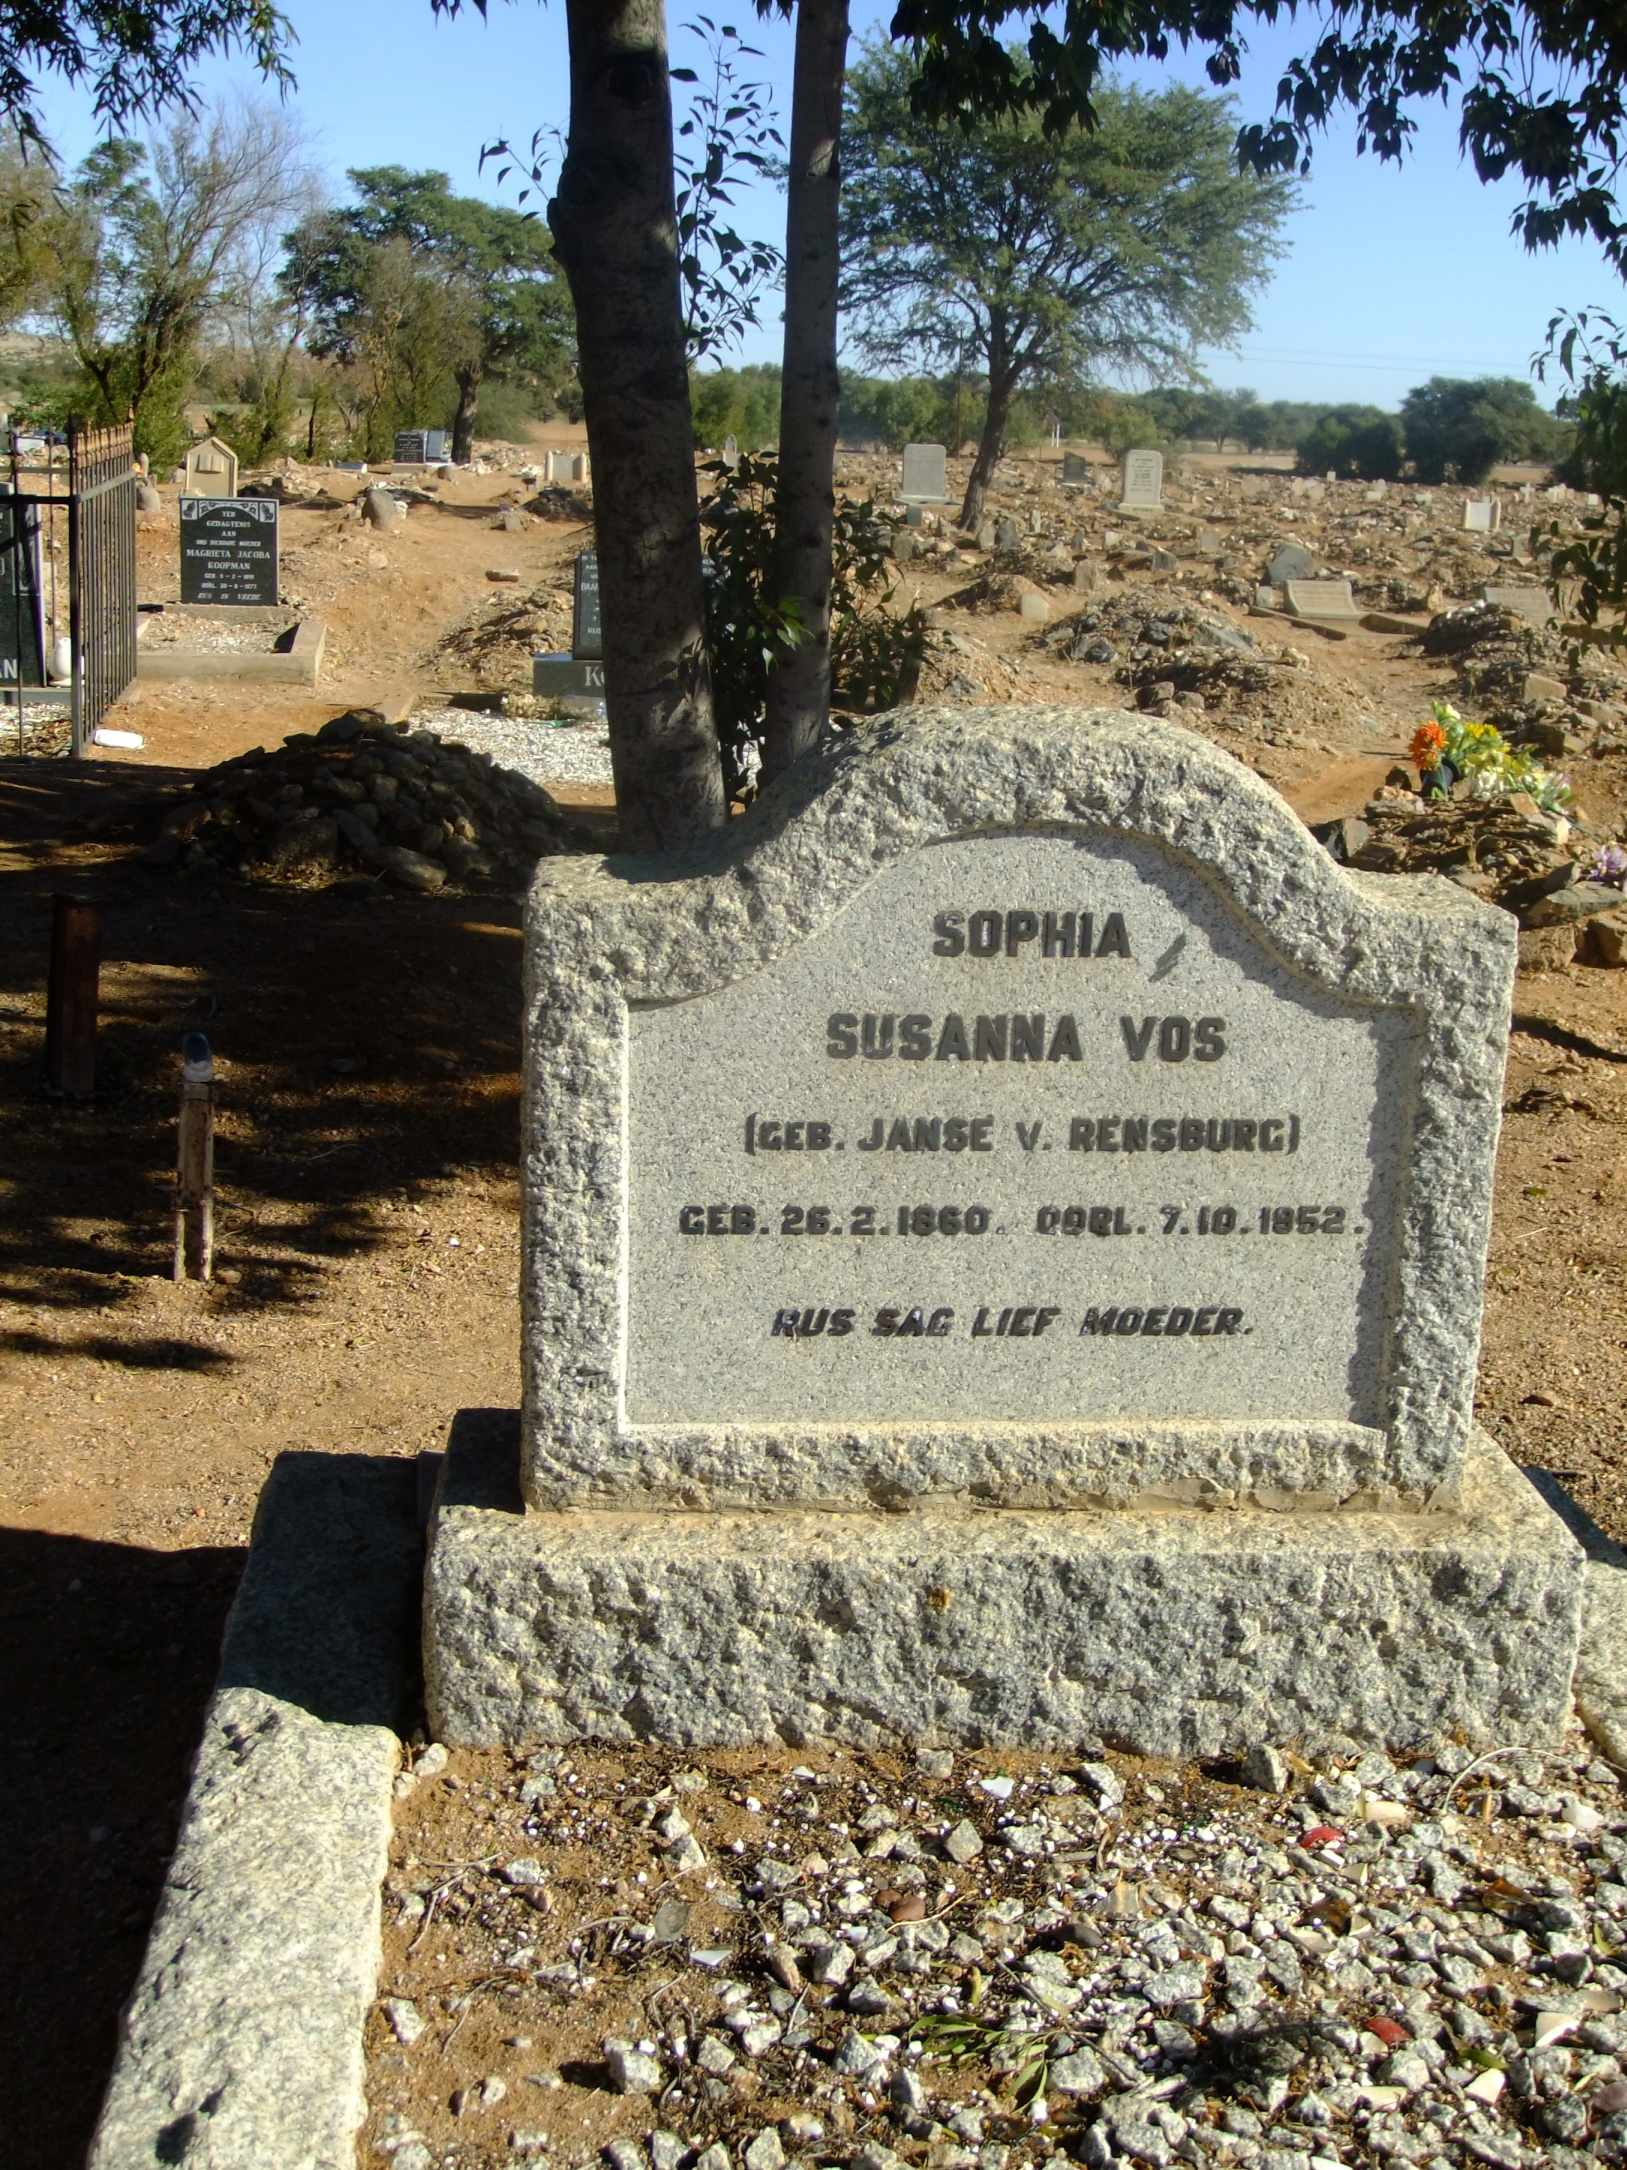 Vos Susanna nee Janse Van Rensburg born 26 February 1860 died 07 October 1952